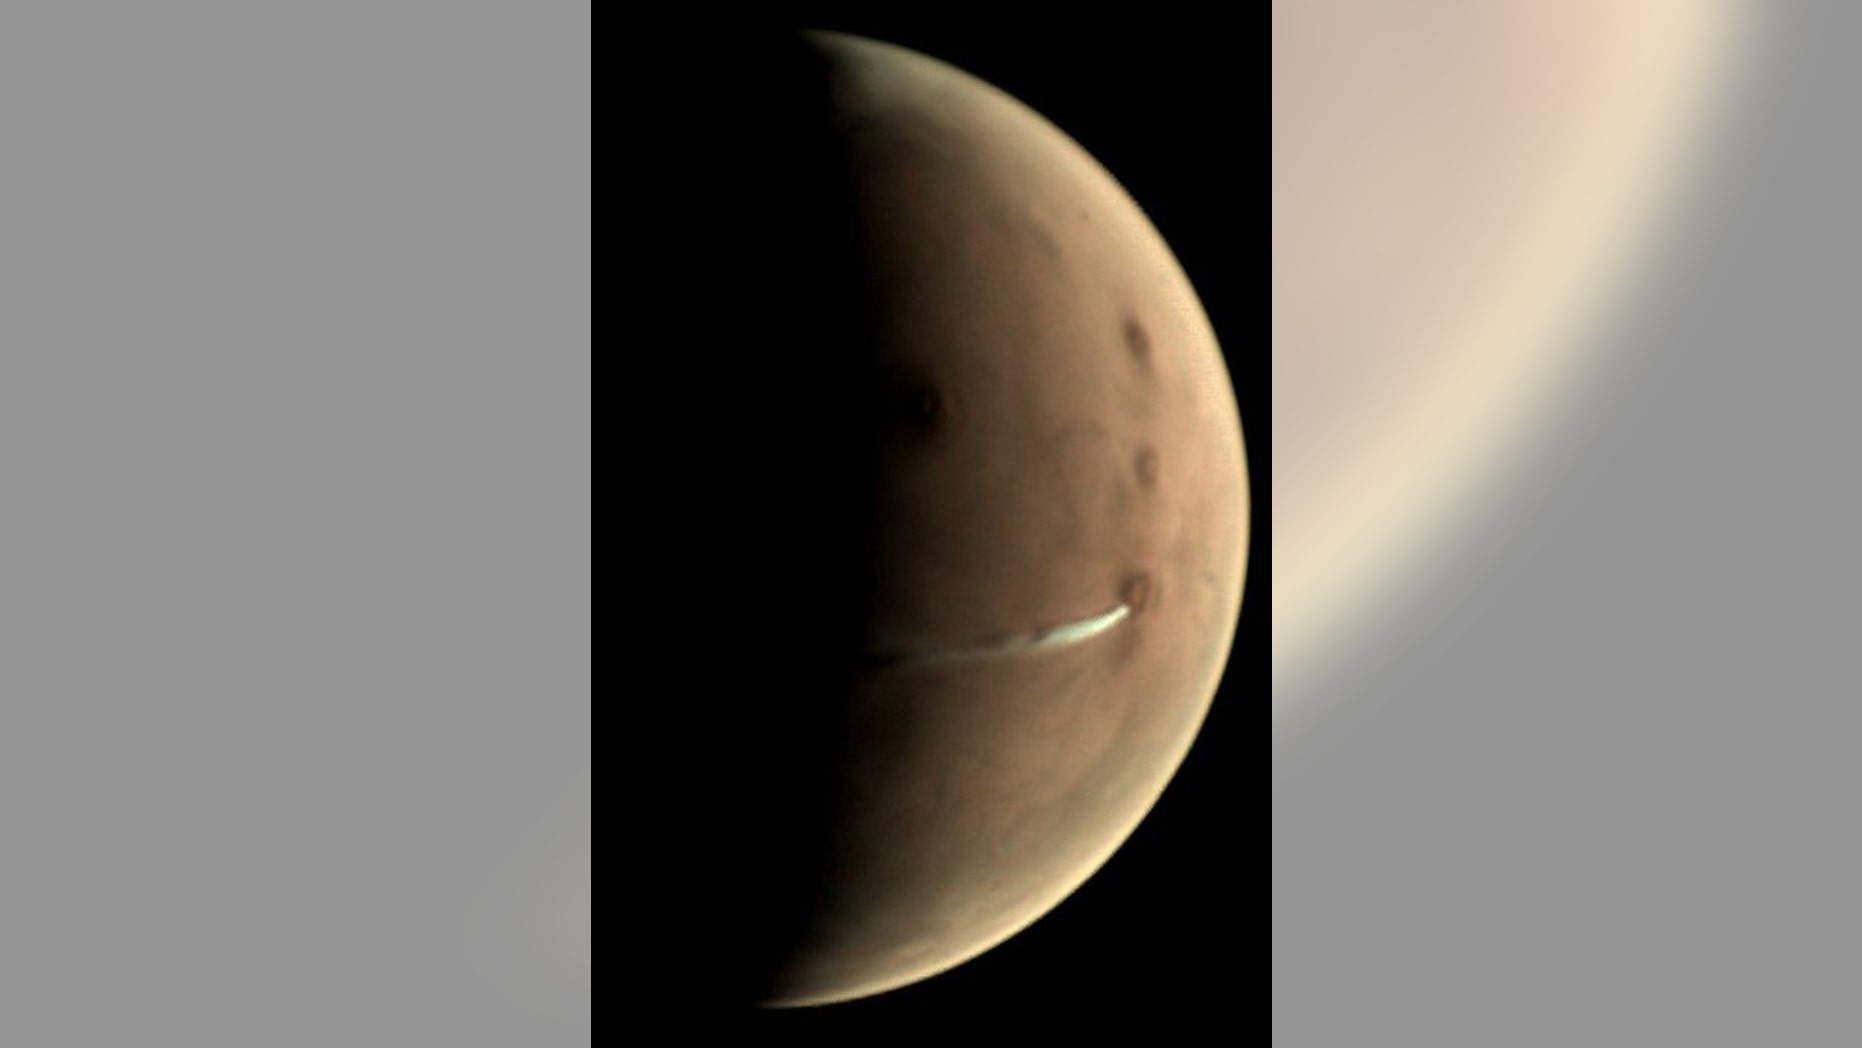 Since 13 September 2018, the Visual Monitoring Camera (VMC) on board ESA's Mars Express has been observing the evolution of a curious cloud formation that appears regularly in the vicinity of the 20 km-high Arsia Mons volcano, close to the planet's equator. (Credit: ESA/GCP/UPV/EHU Bilbao, CC BY-SA 3.0 IGO)